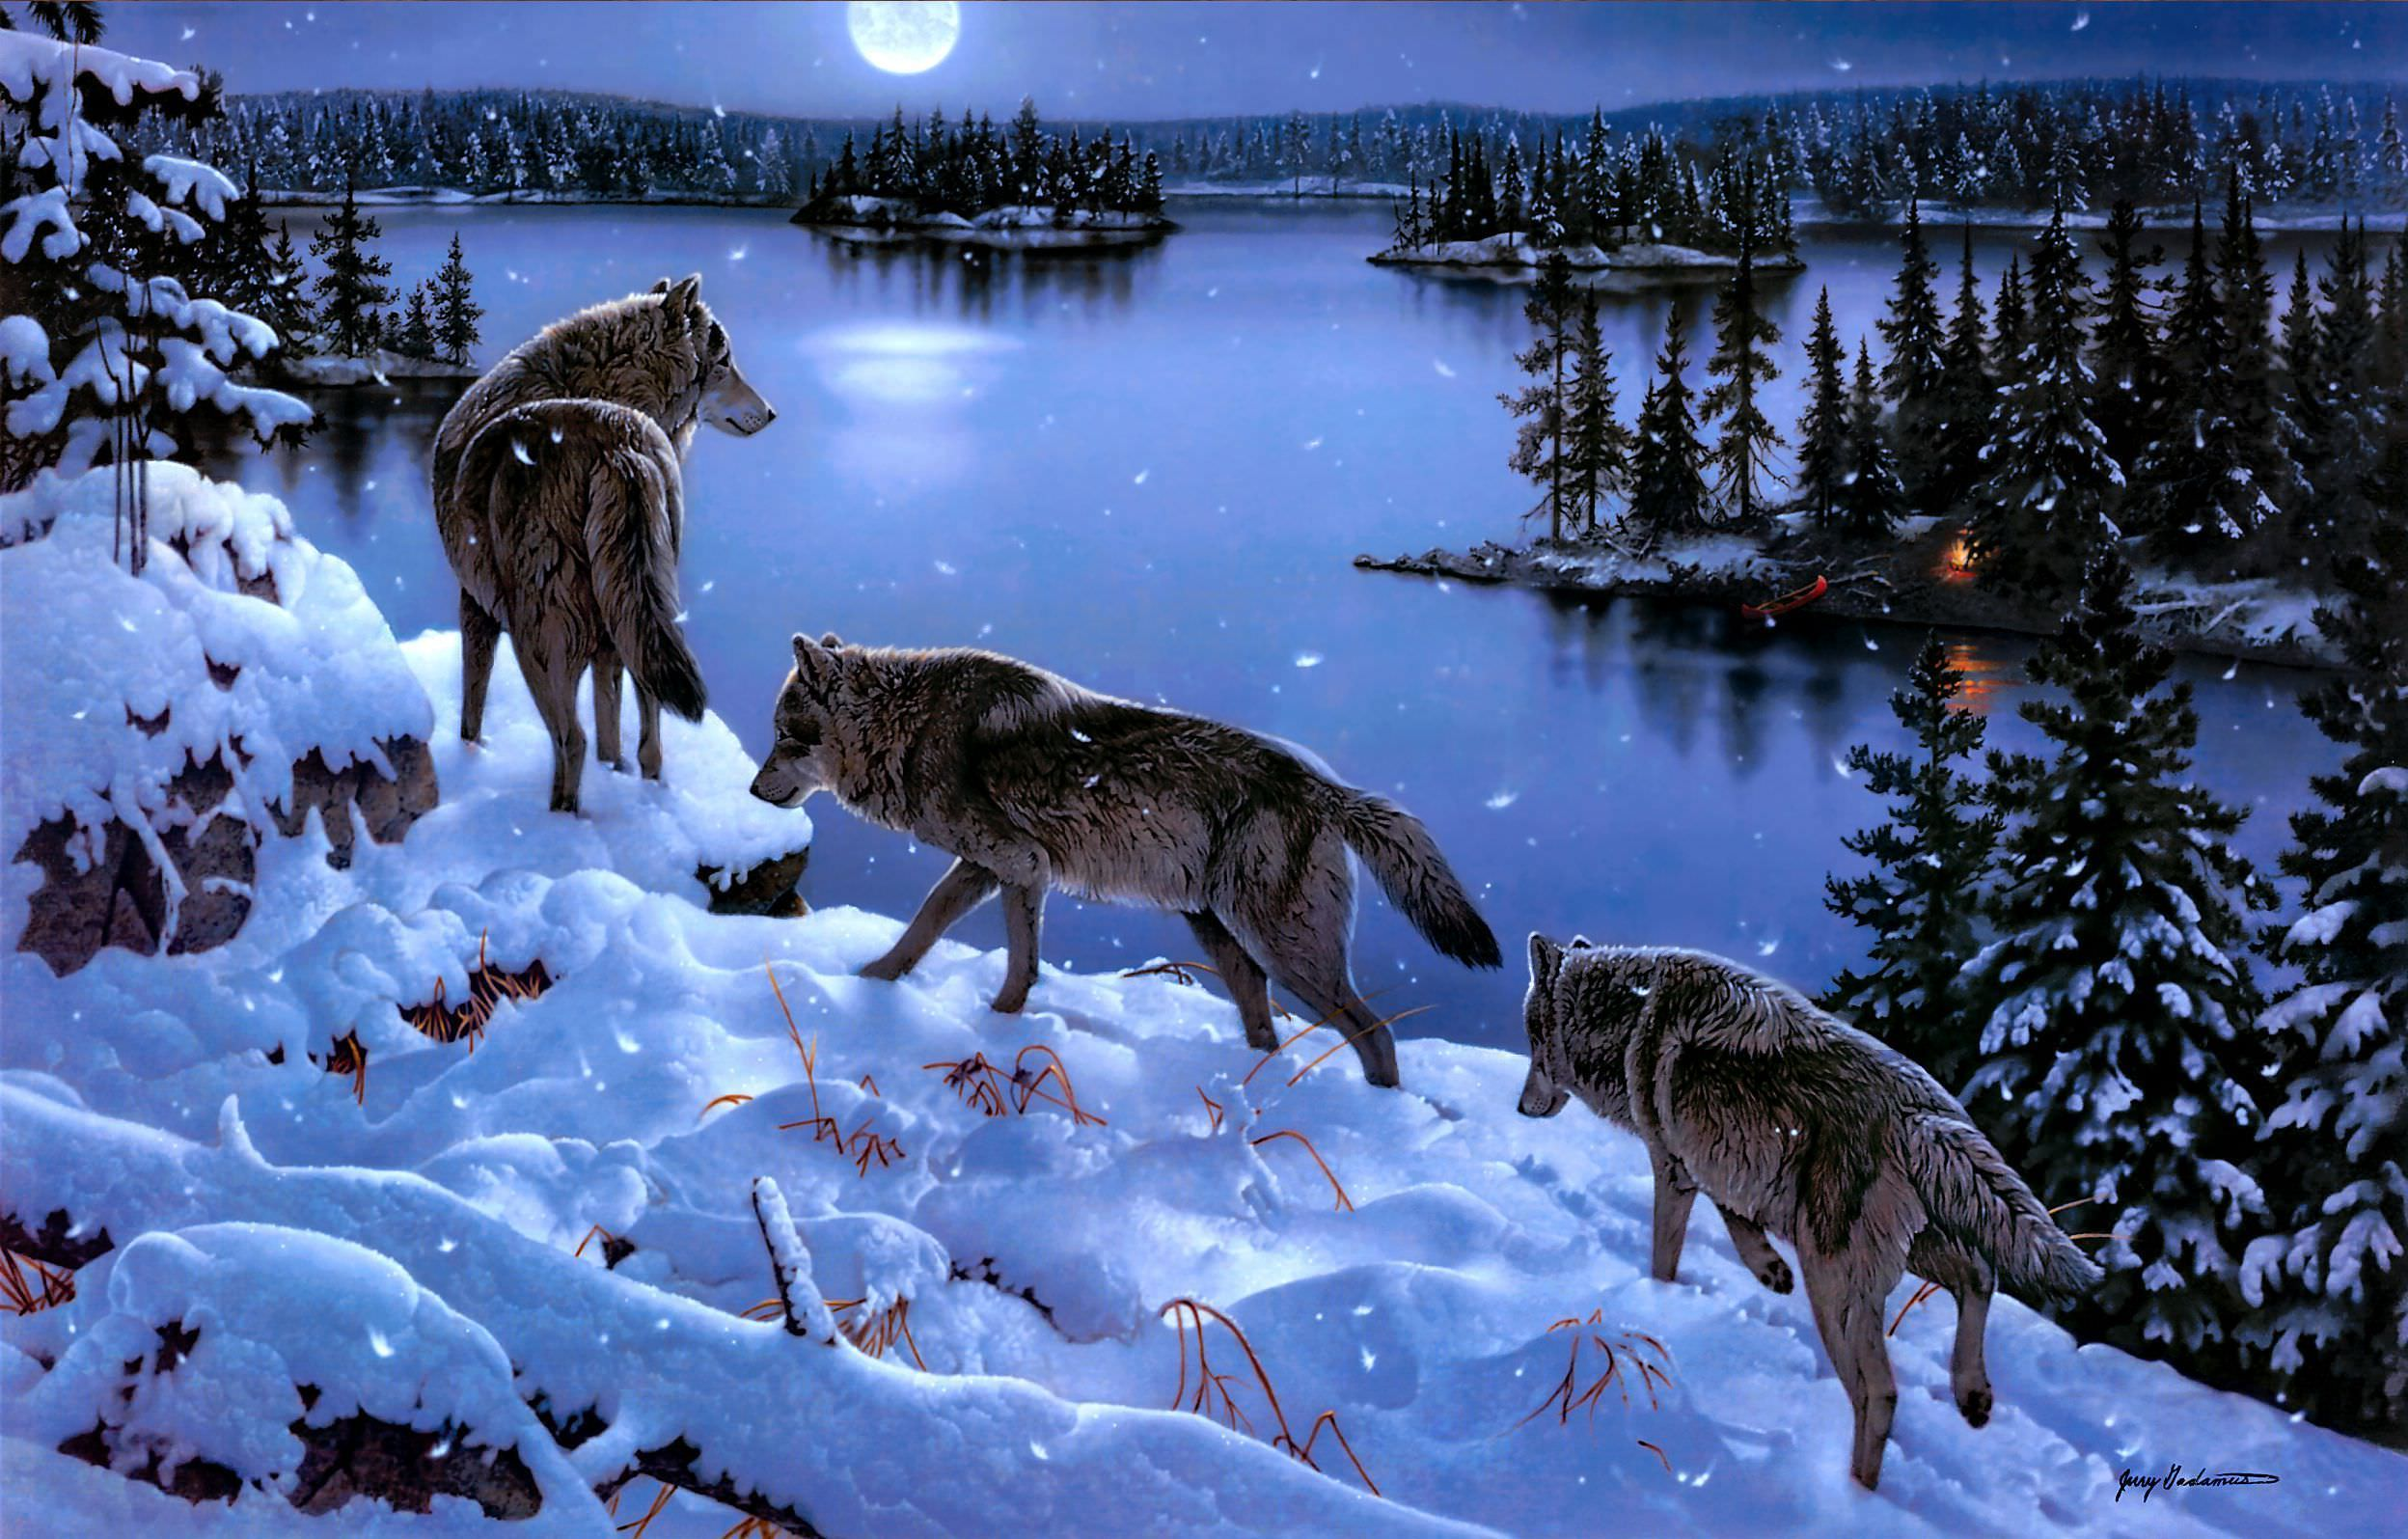 Wonderful Natyre with Wolfs Image